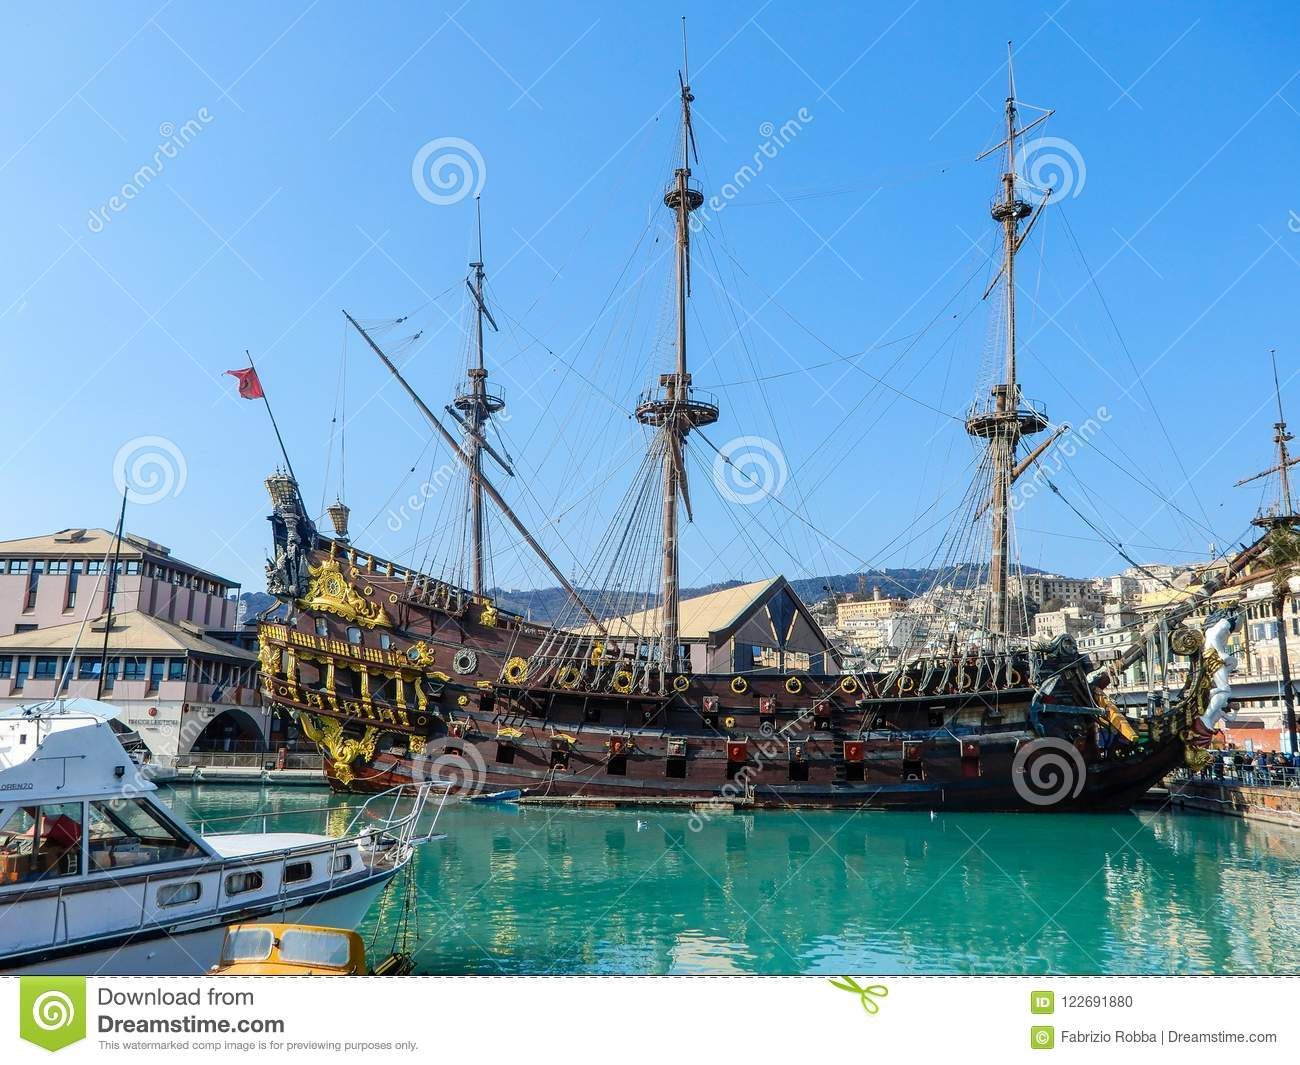 Galeone Neptune pirate ship in Genoa Porto Antico Old harbor, Italy.